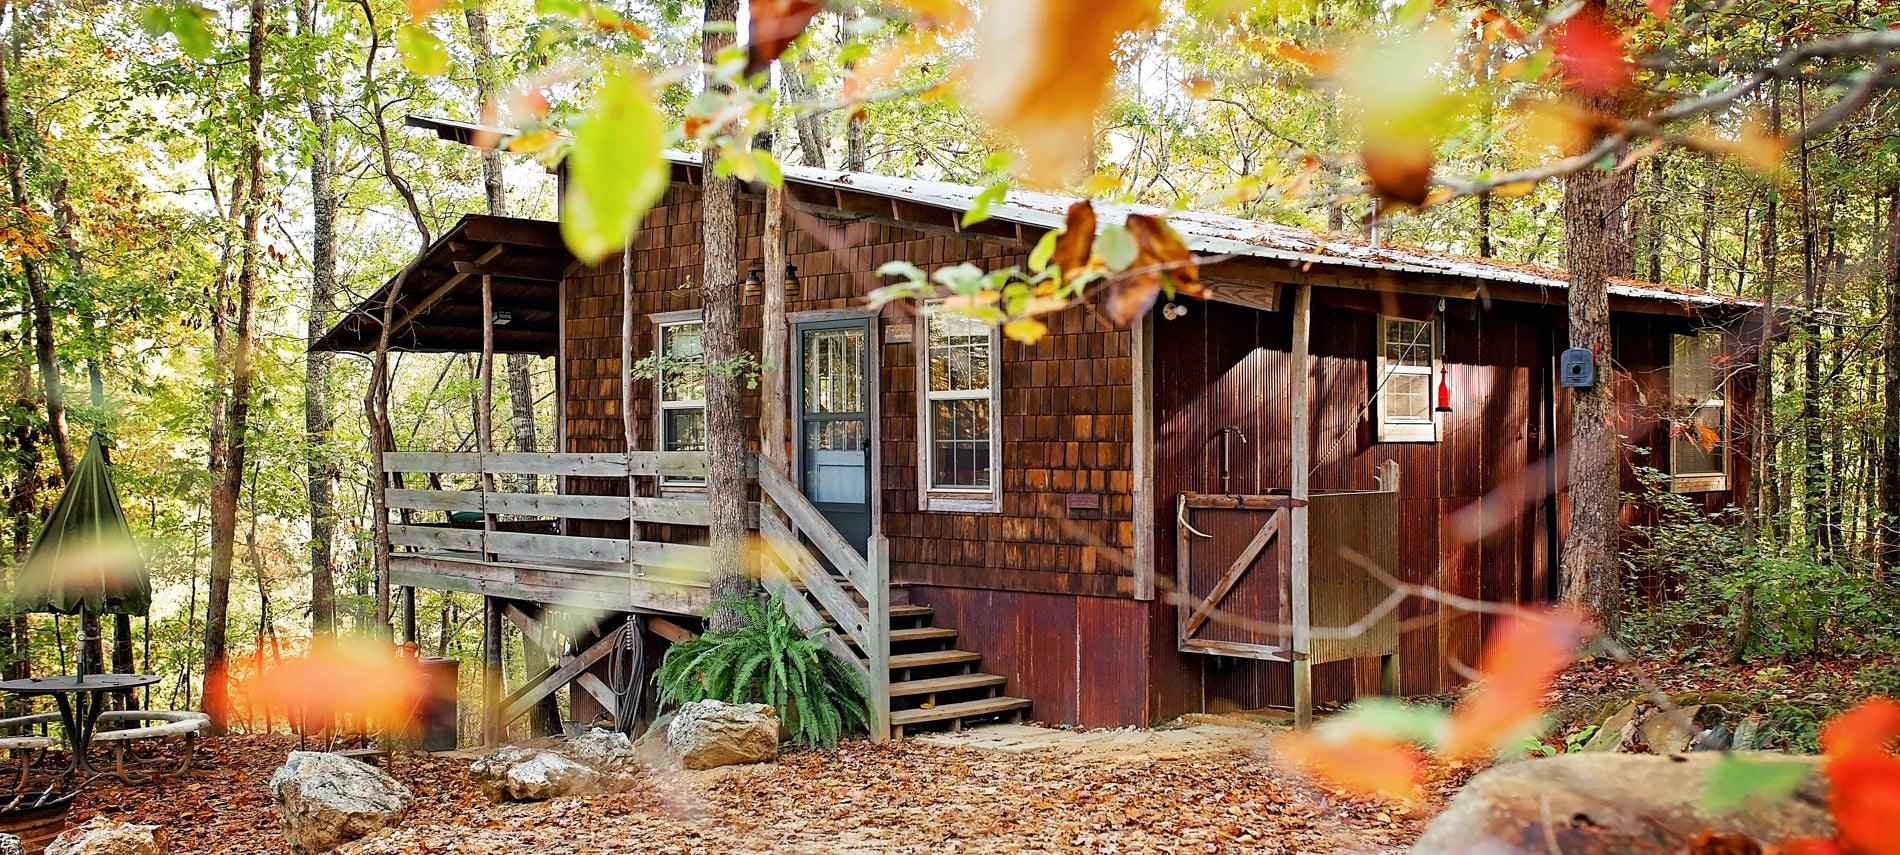 Beautiful exterior view of the cabin in the fall surrounded by colorful trees